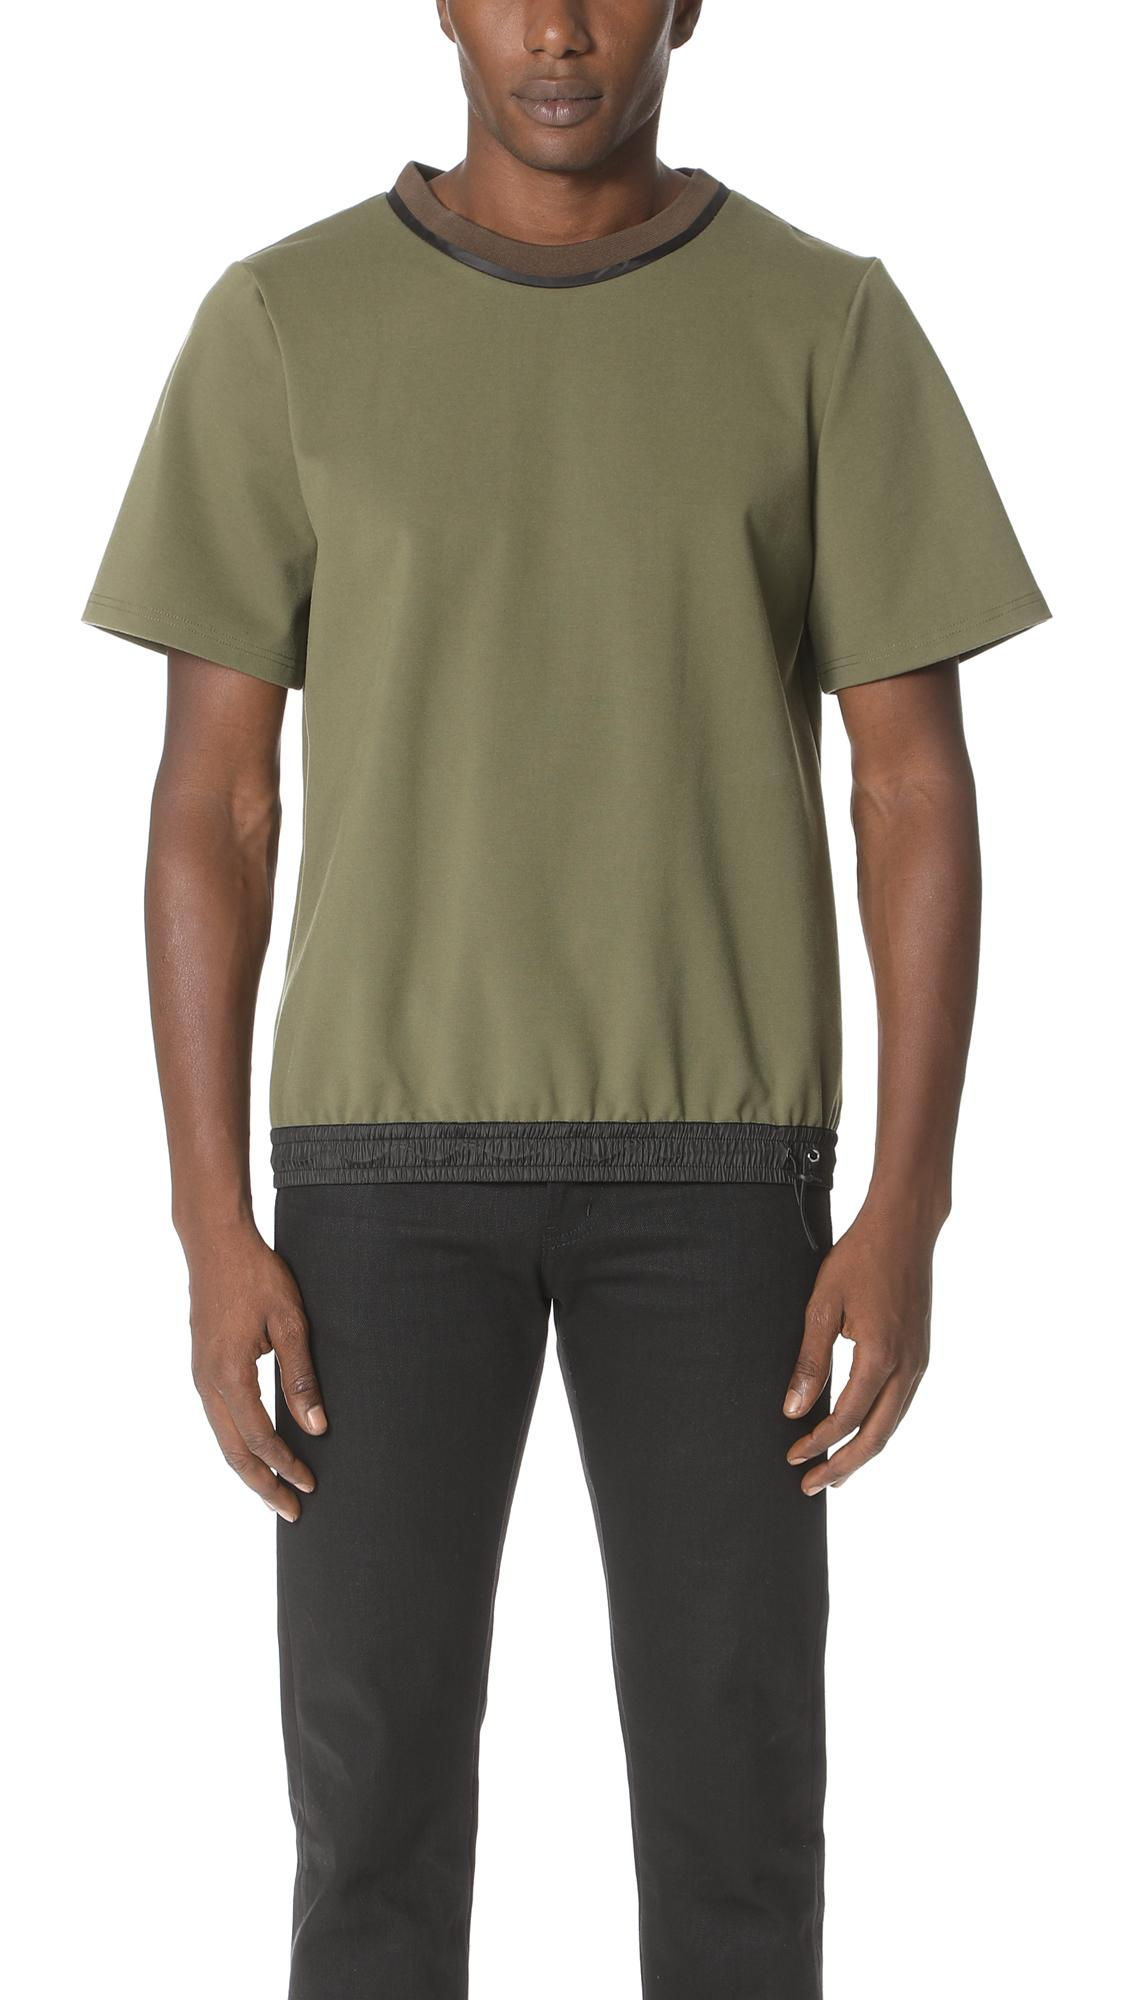 Public School Gonzo Short Sleeve Shirt With Bungee In Olive